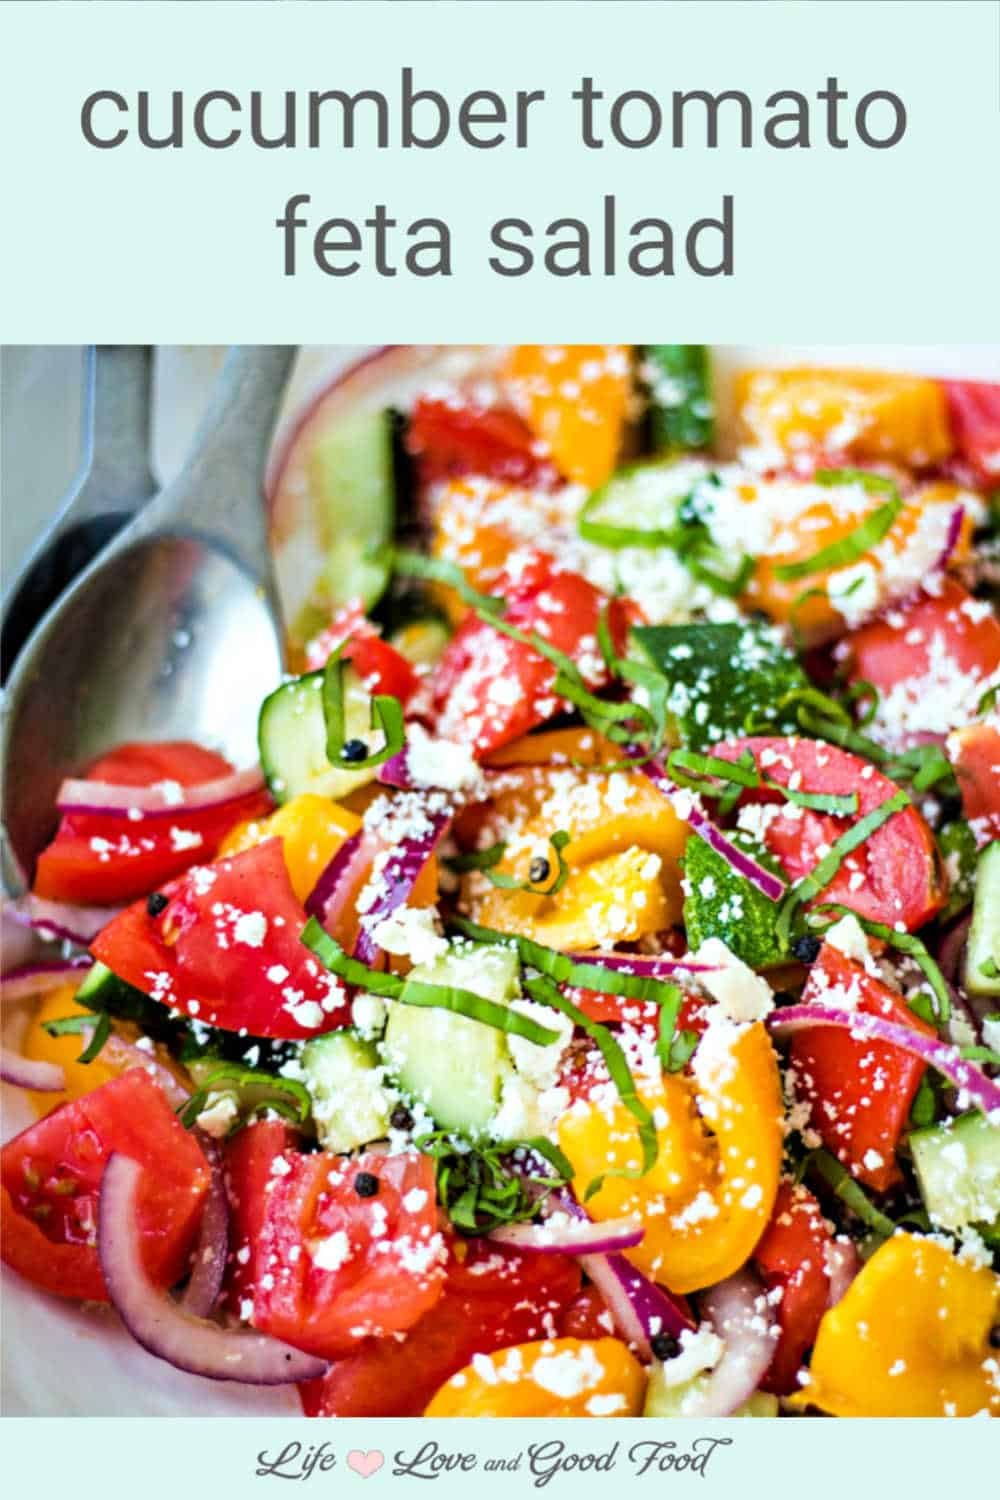 Simple ingredients combine to create amazing flavor in this fresh and easy Cucumber Tomato Feta Salad. Fresh crisp cucumbers, ripe sweet tomatoes, red onion, and tangy Feta cheese get tossed with a splash of extra-virgin olive oil and red wine vinegar in this delicious 15-minute Summer salad. It's the perfect side dish for picnics, outdoor barbecues, or for whenever you want something fresh and delicious.